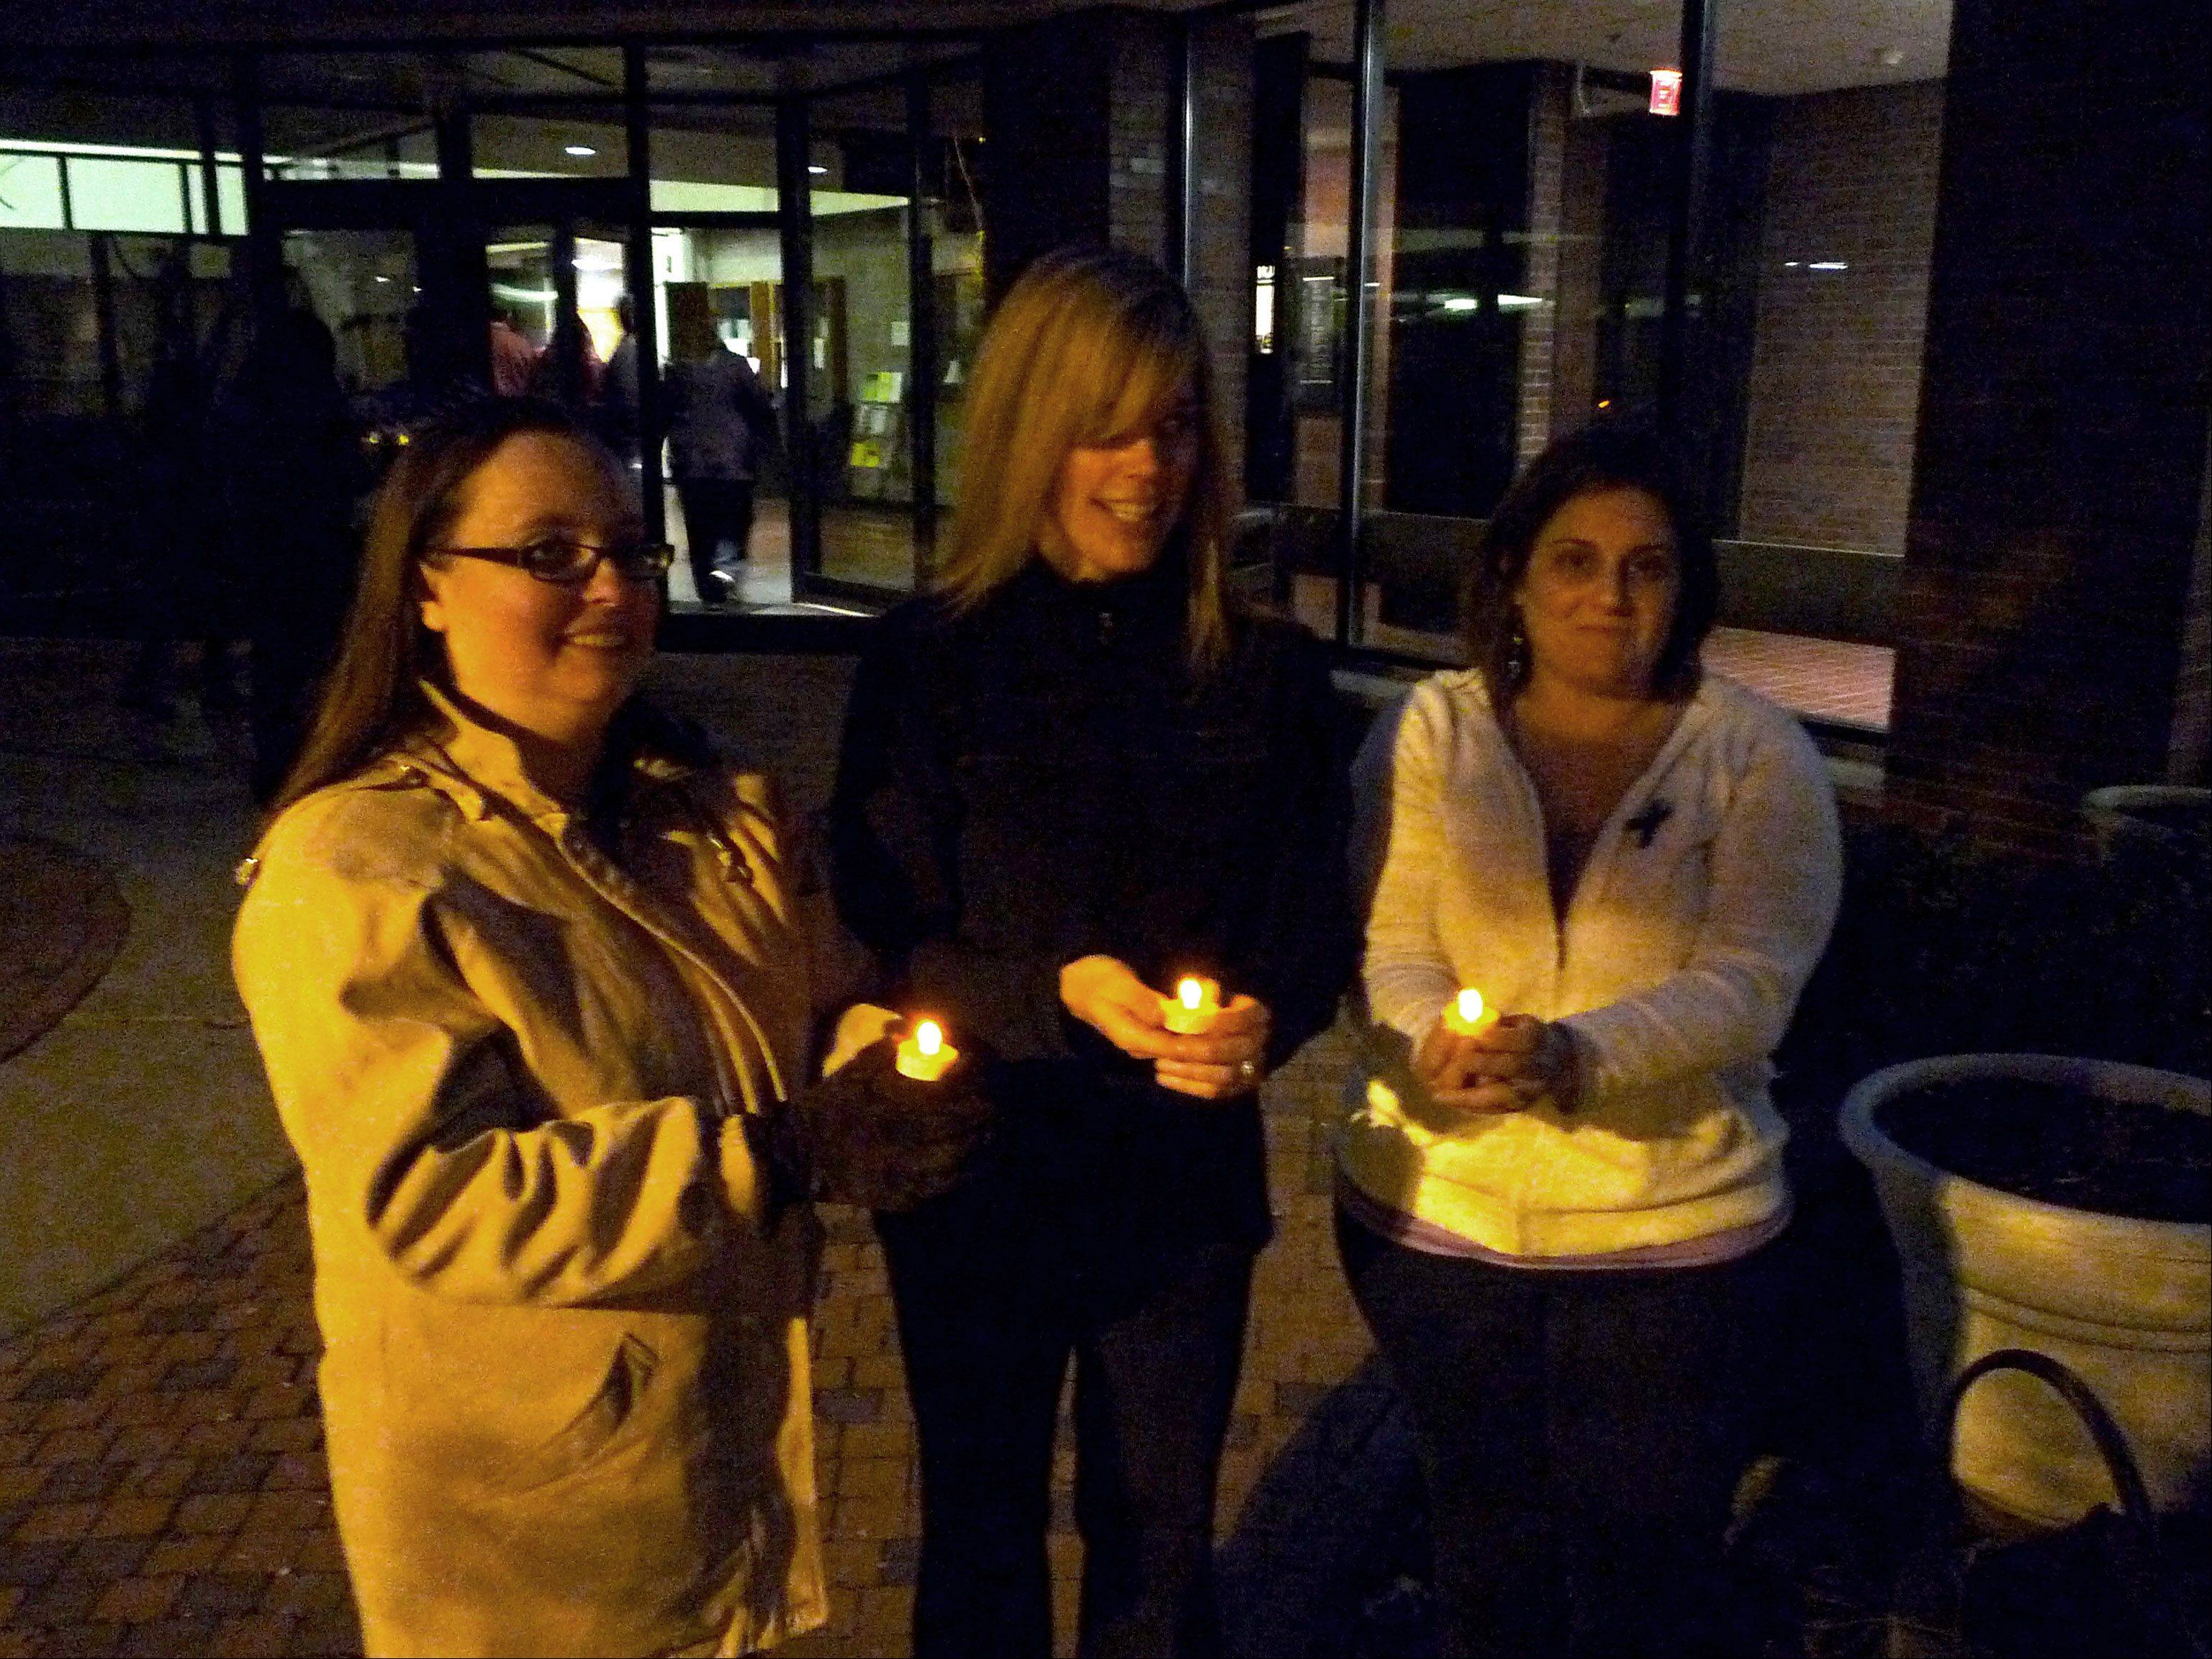 Participants in Oakton Community College's Take Back the Night rally on Friday hold candles in honor of victims of sexual abuse.